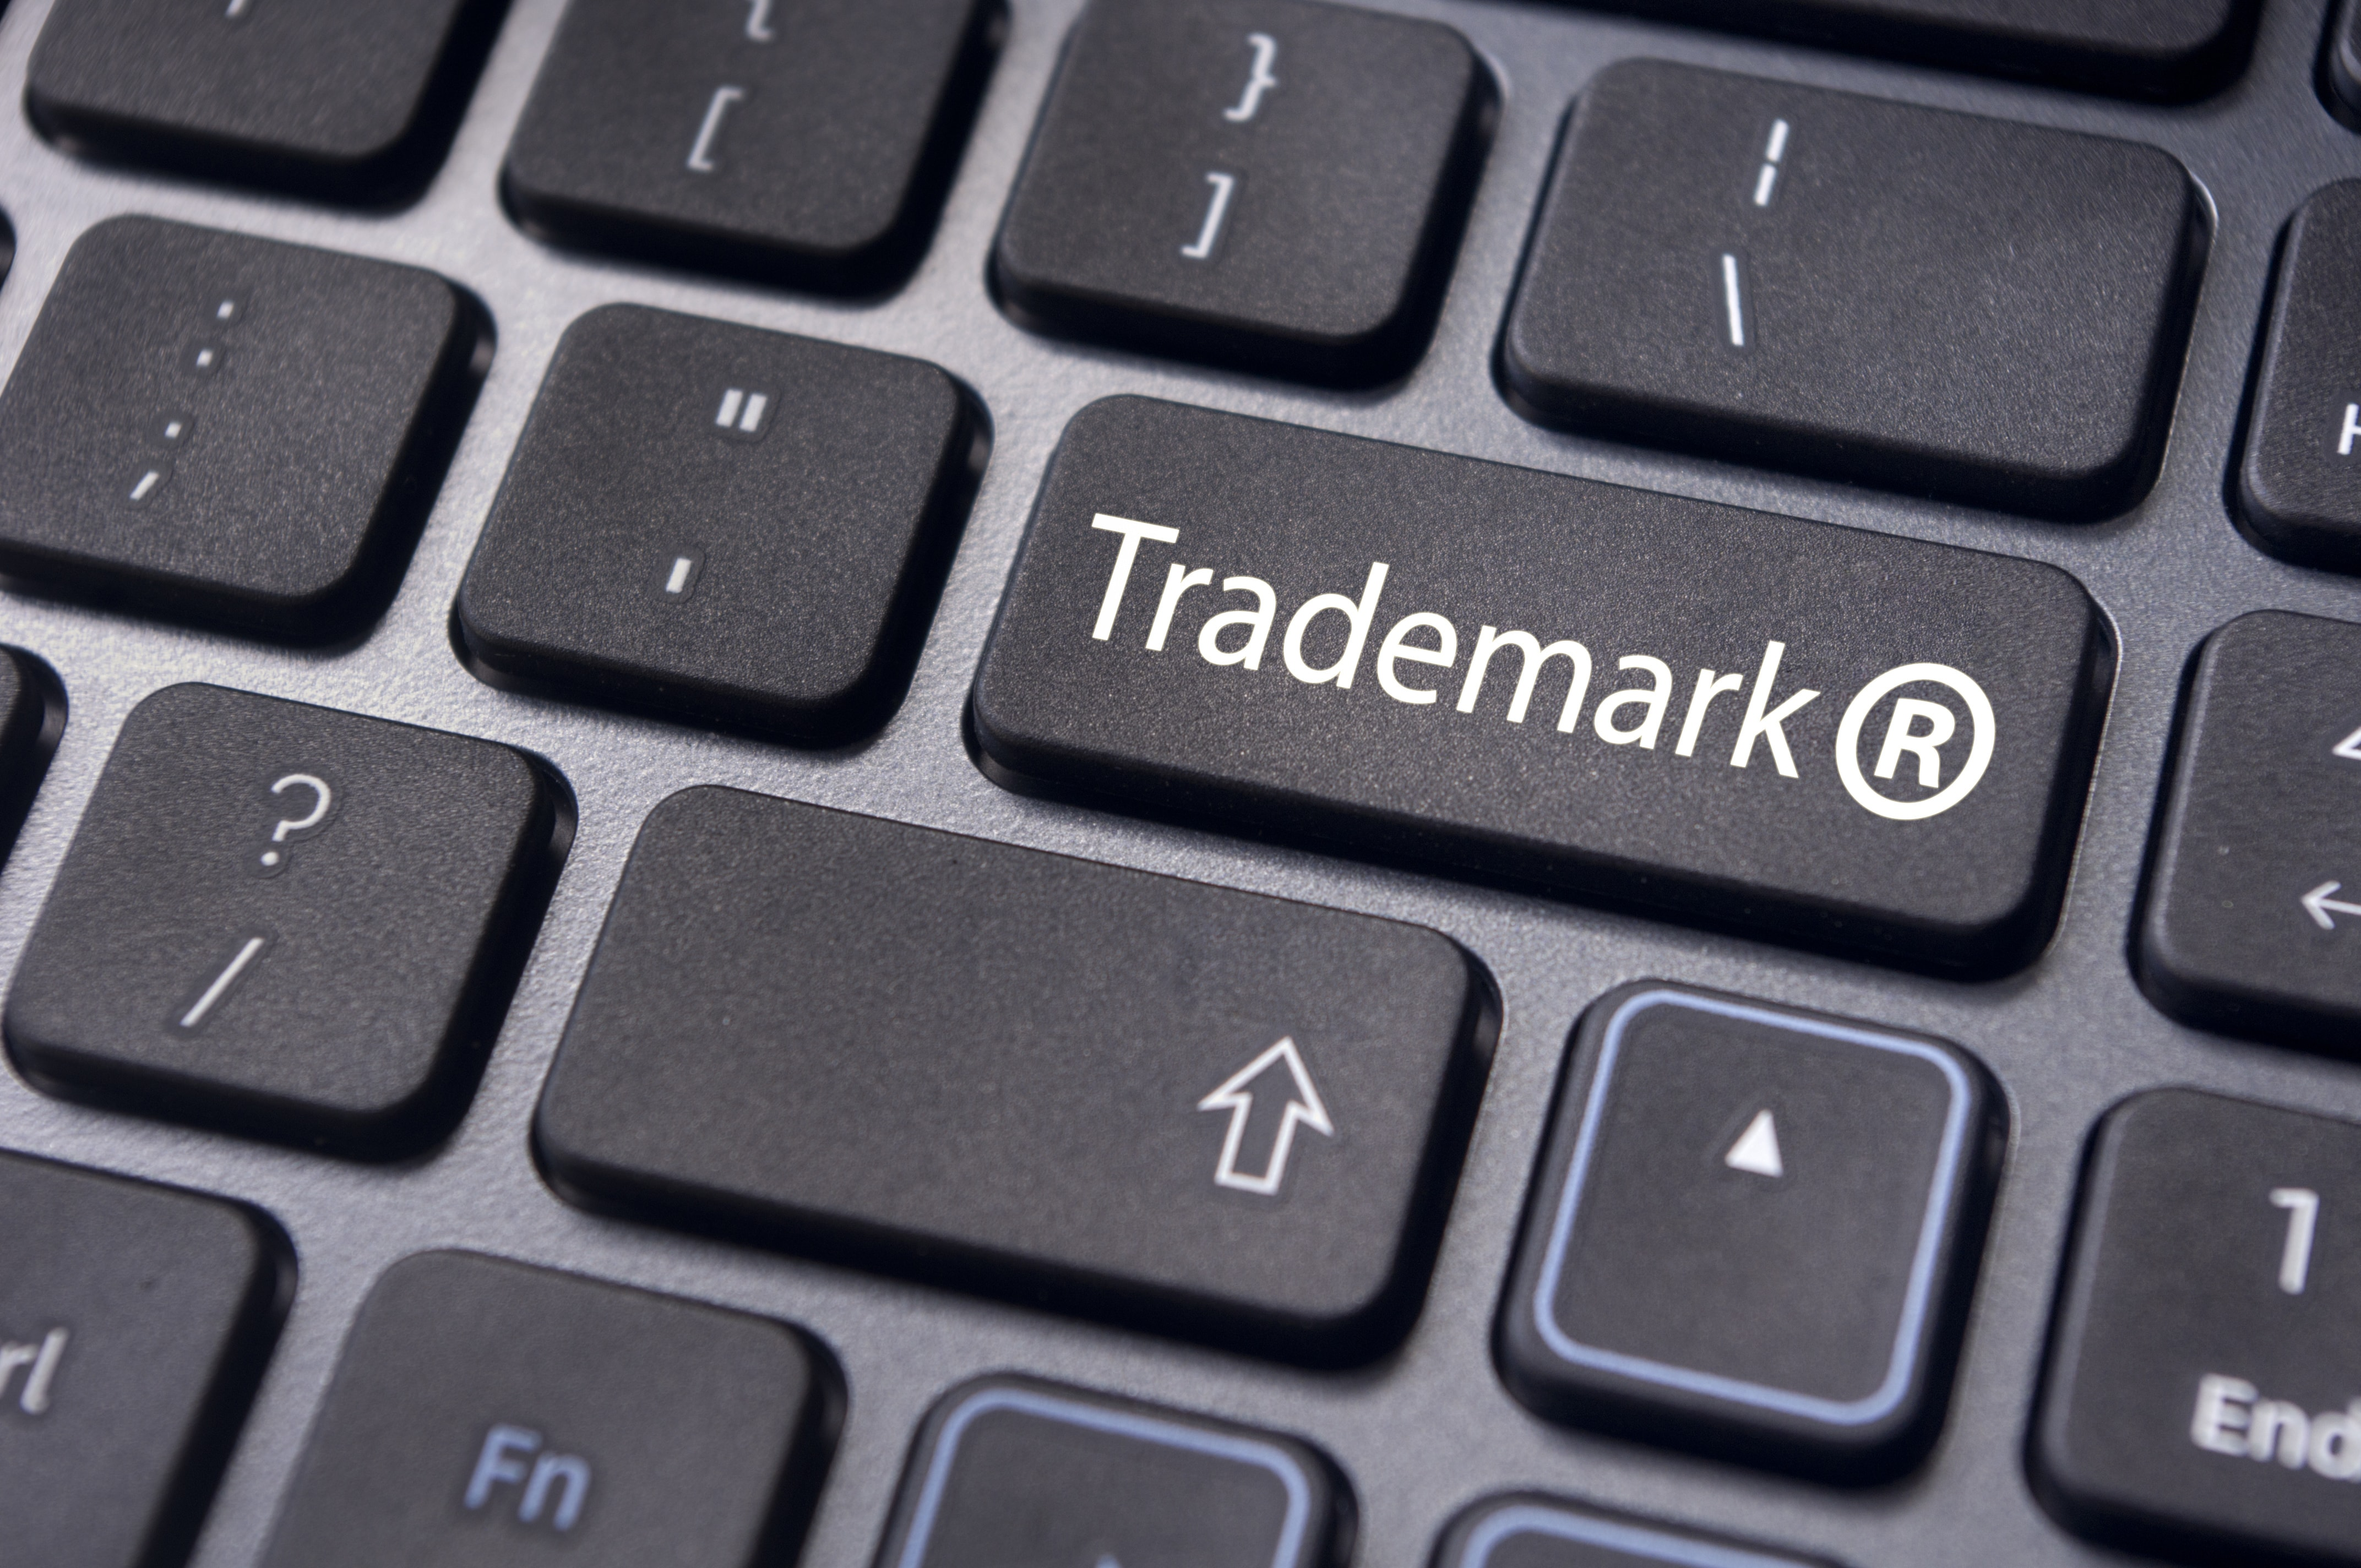 When Should I Trademark My Business Name?